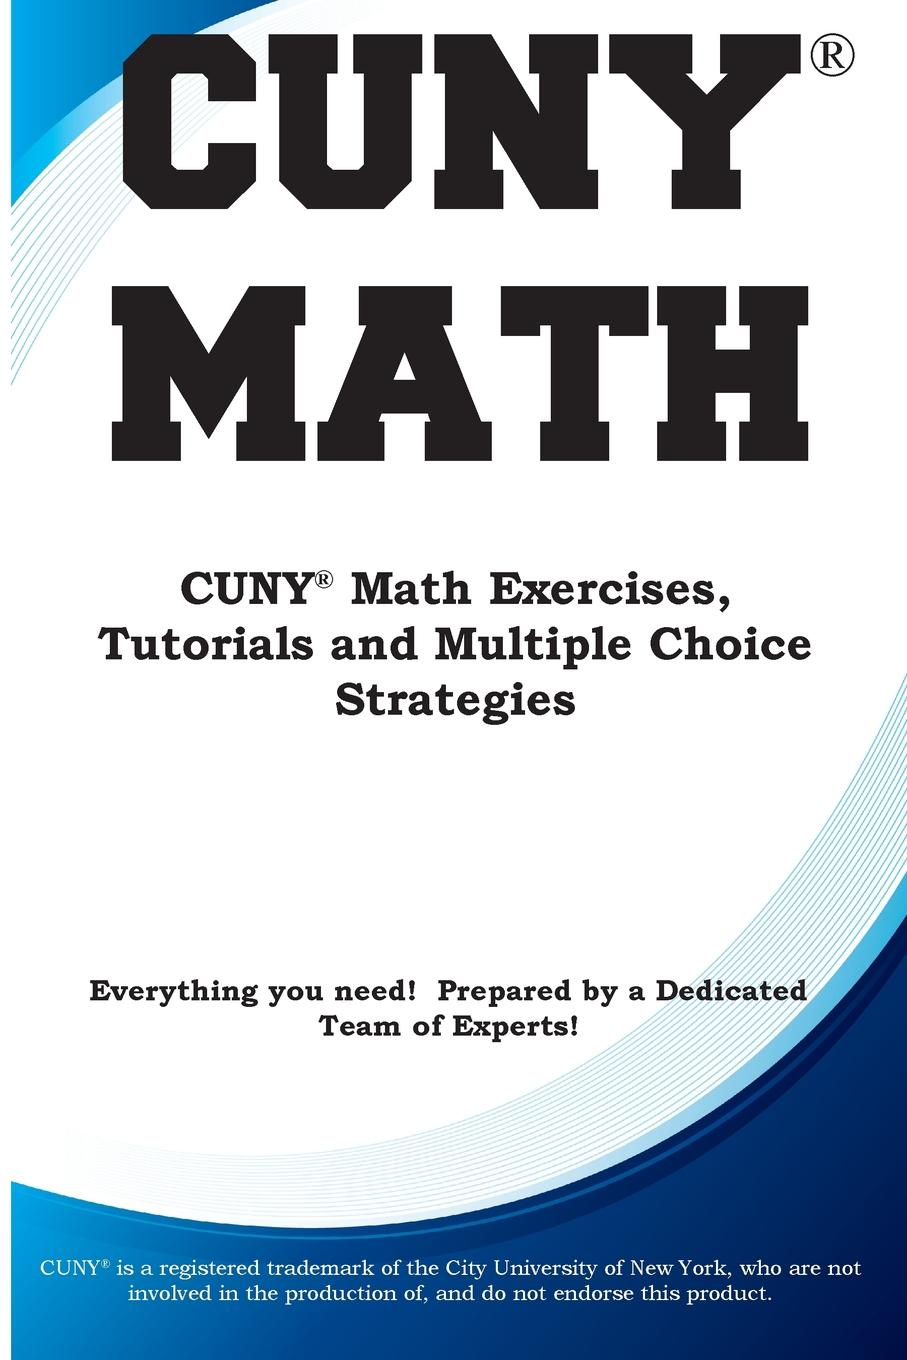 Complete Test Preparation Inc. CUNY Math. CUNY Math Exercises, Tutorials and Multiple Choice Strategies a suit of retro carved geometric necklace and bracelet earrings and ring for women